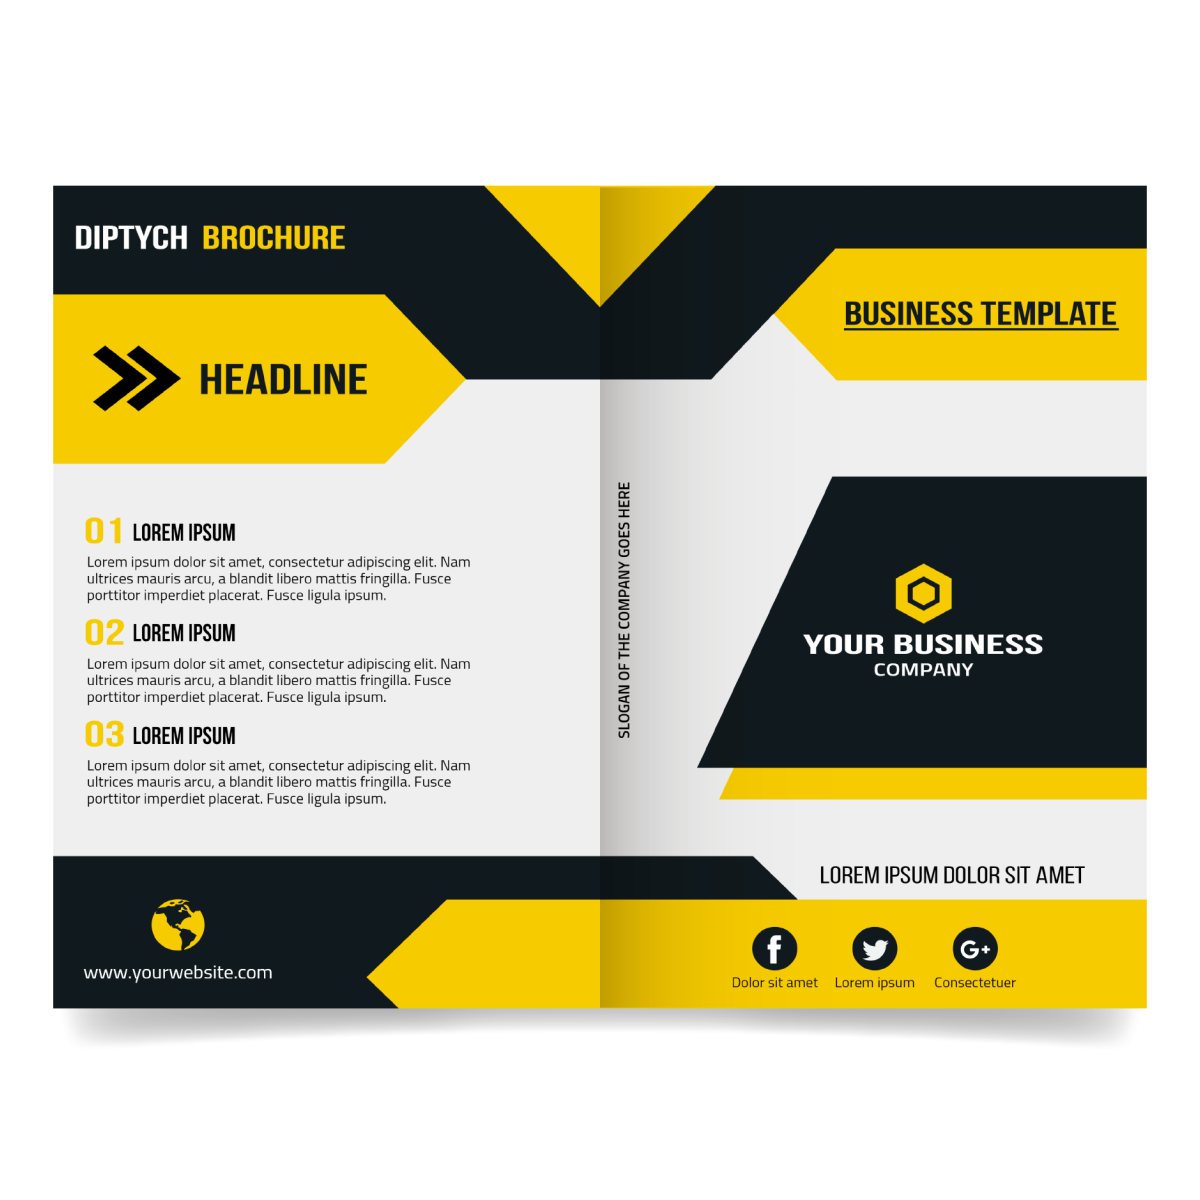 diptych-brochure.png